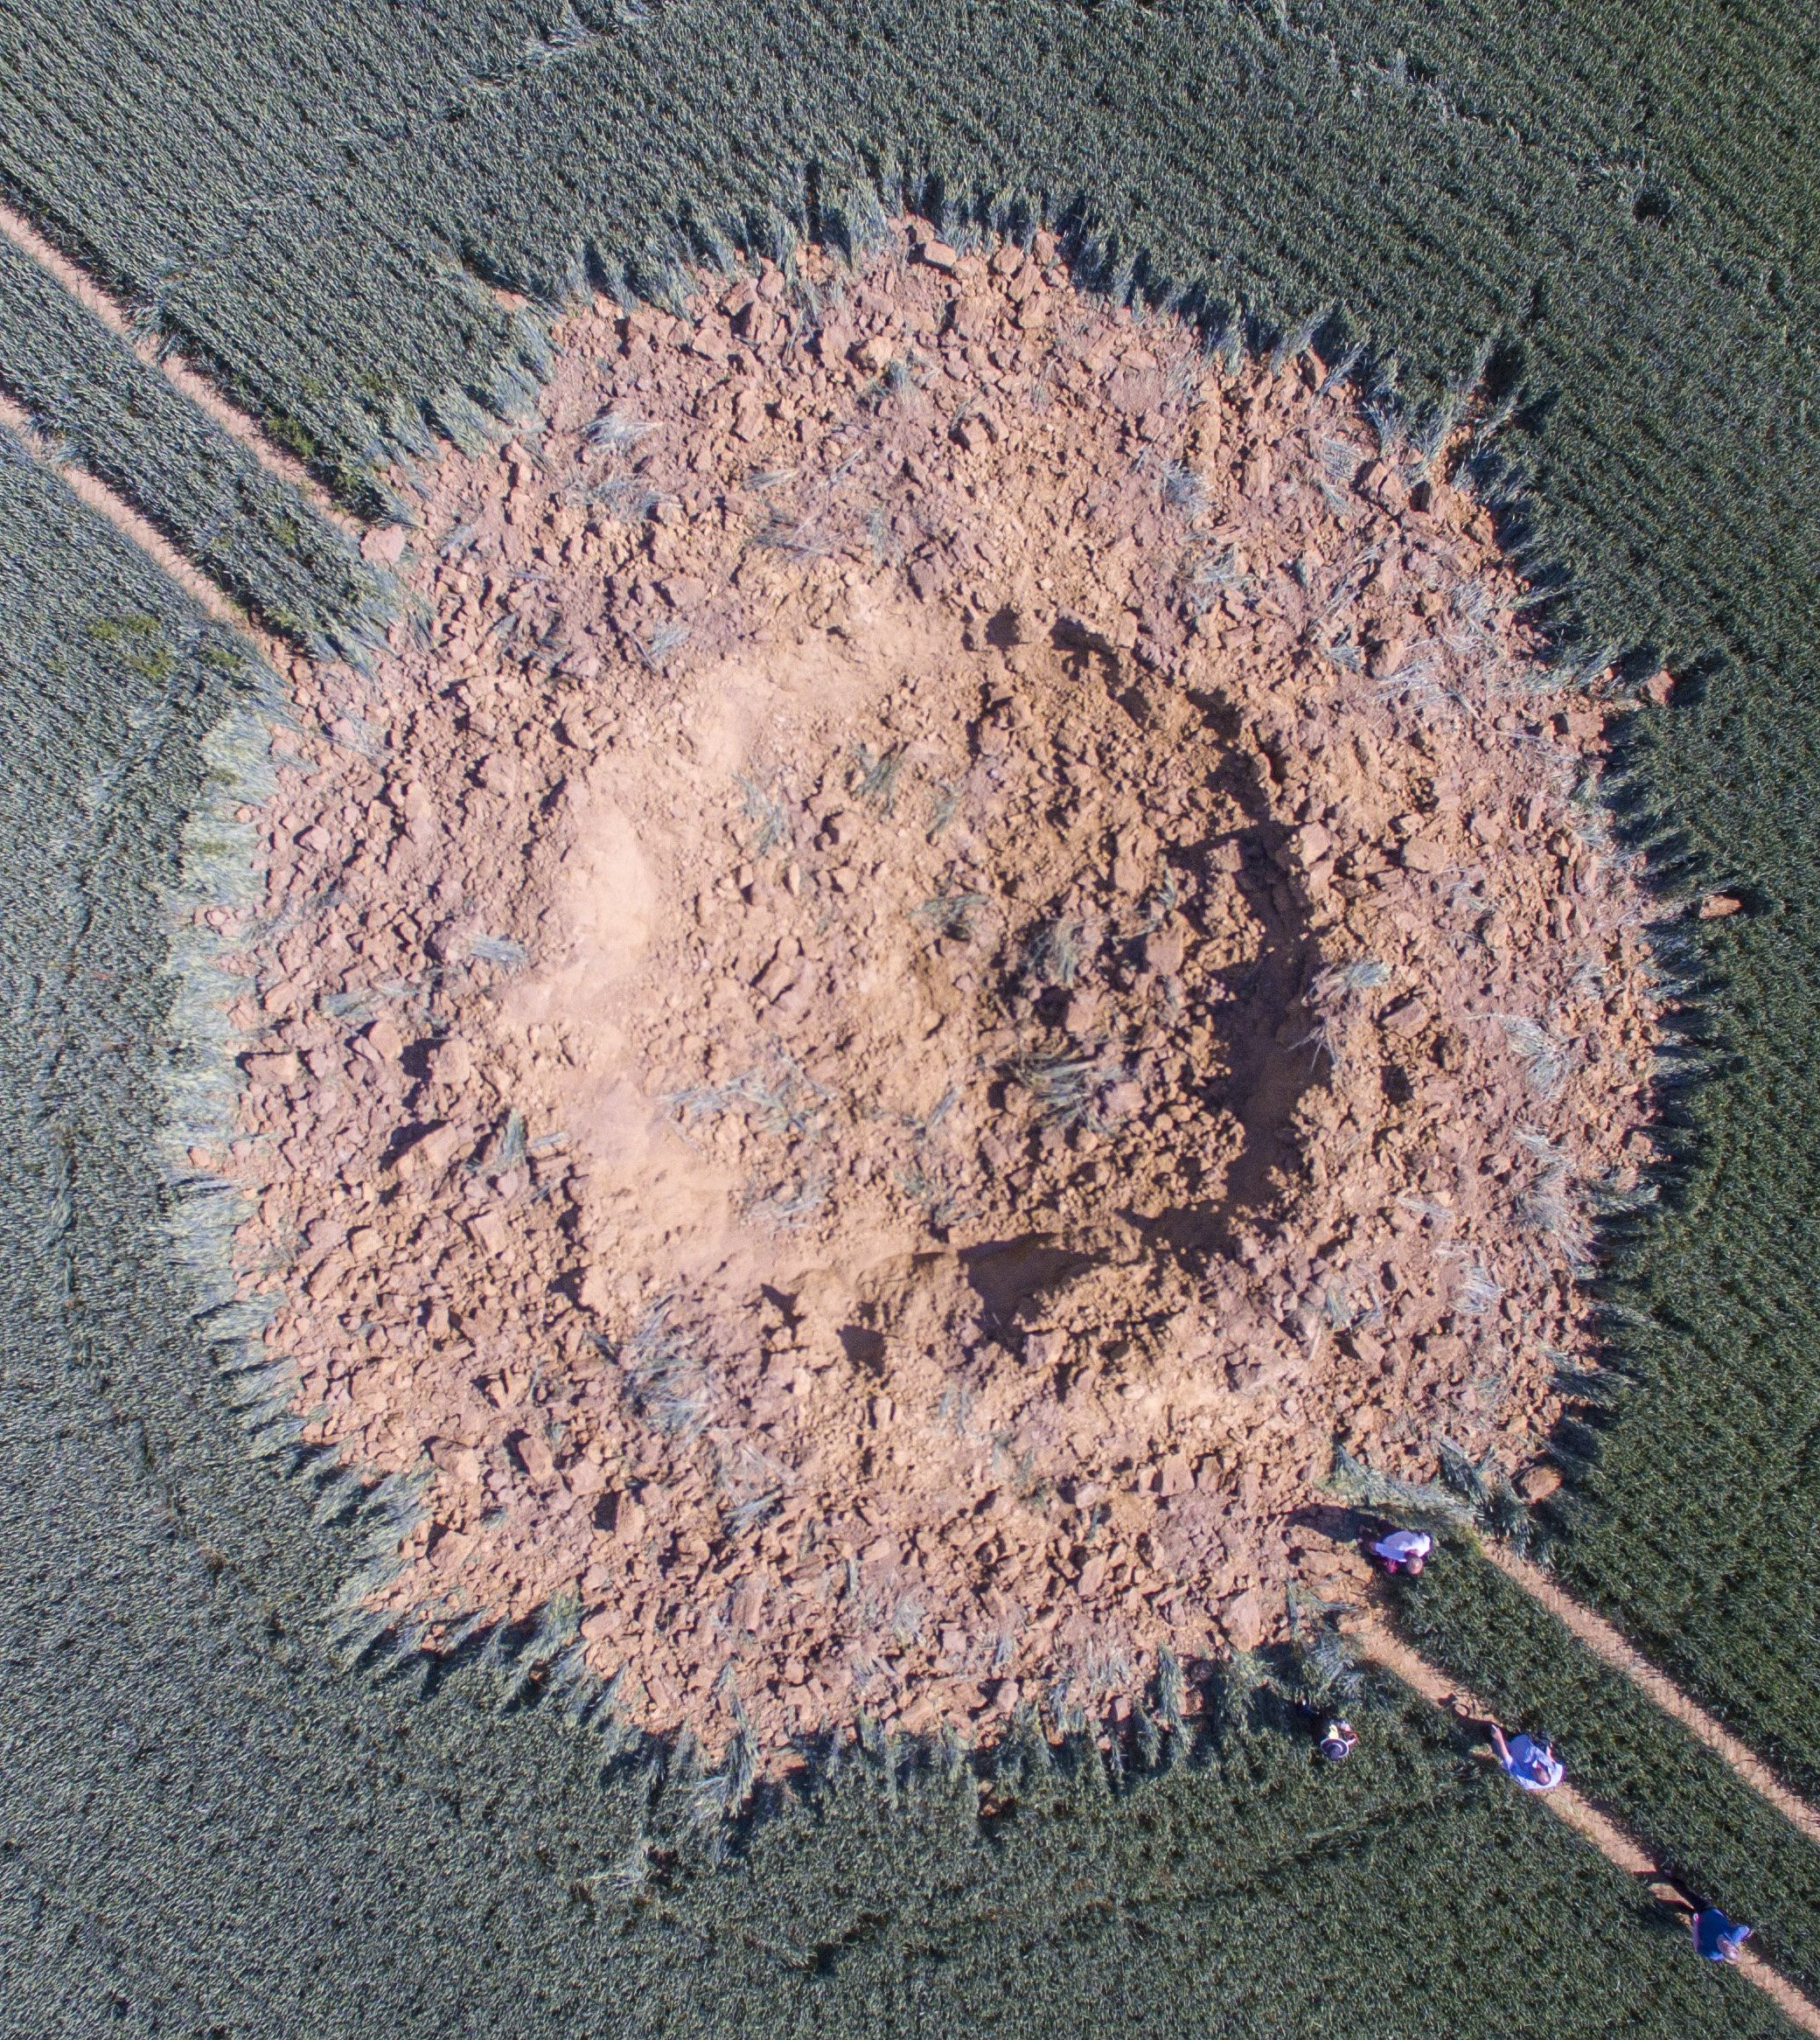 World War II bomb in Germany likely cause of massive crater